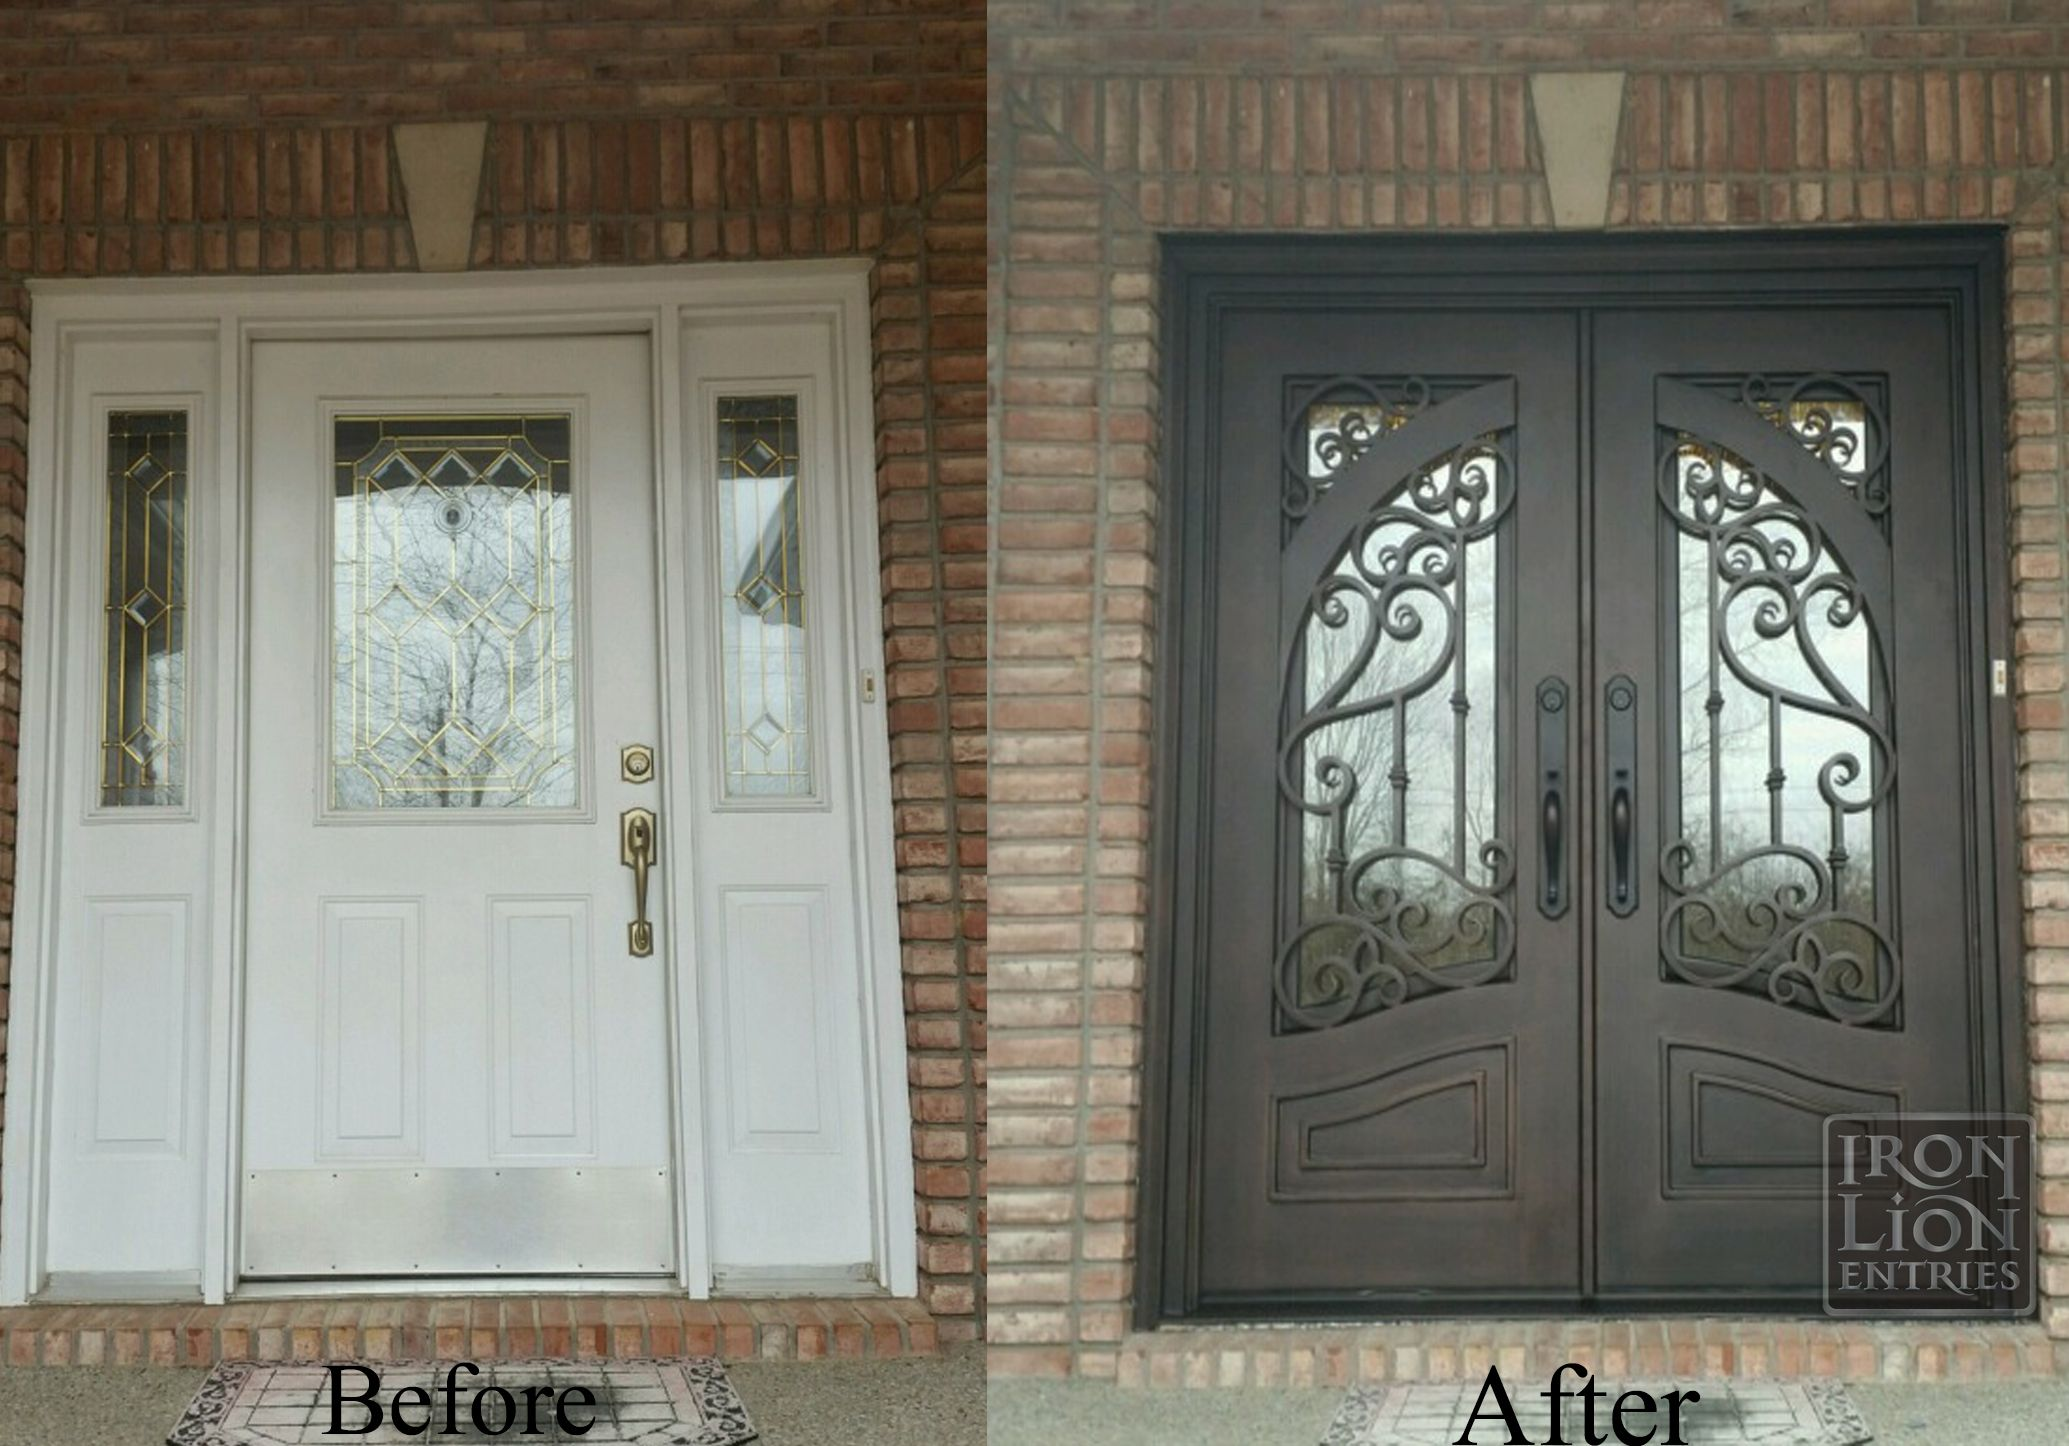 Iron Lion Entries Recent Double Door Remod Customer Went From